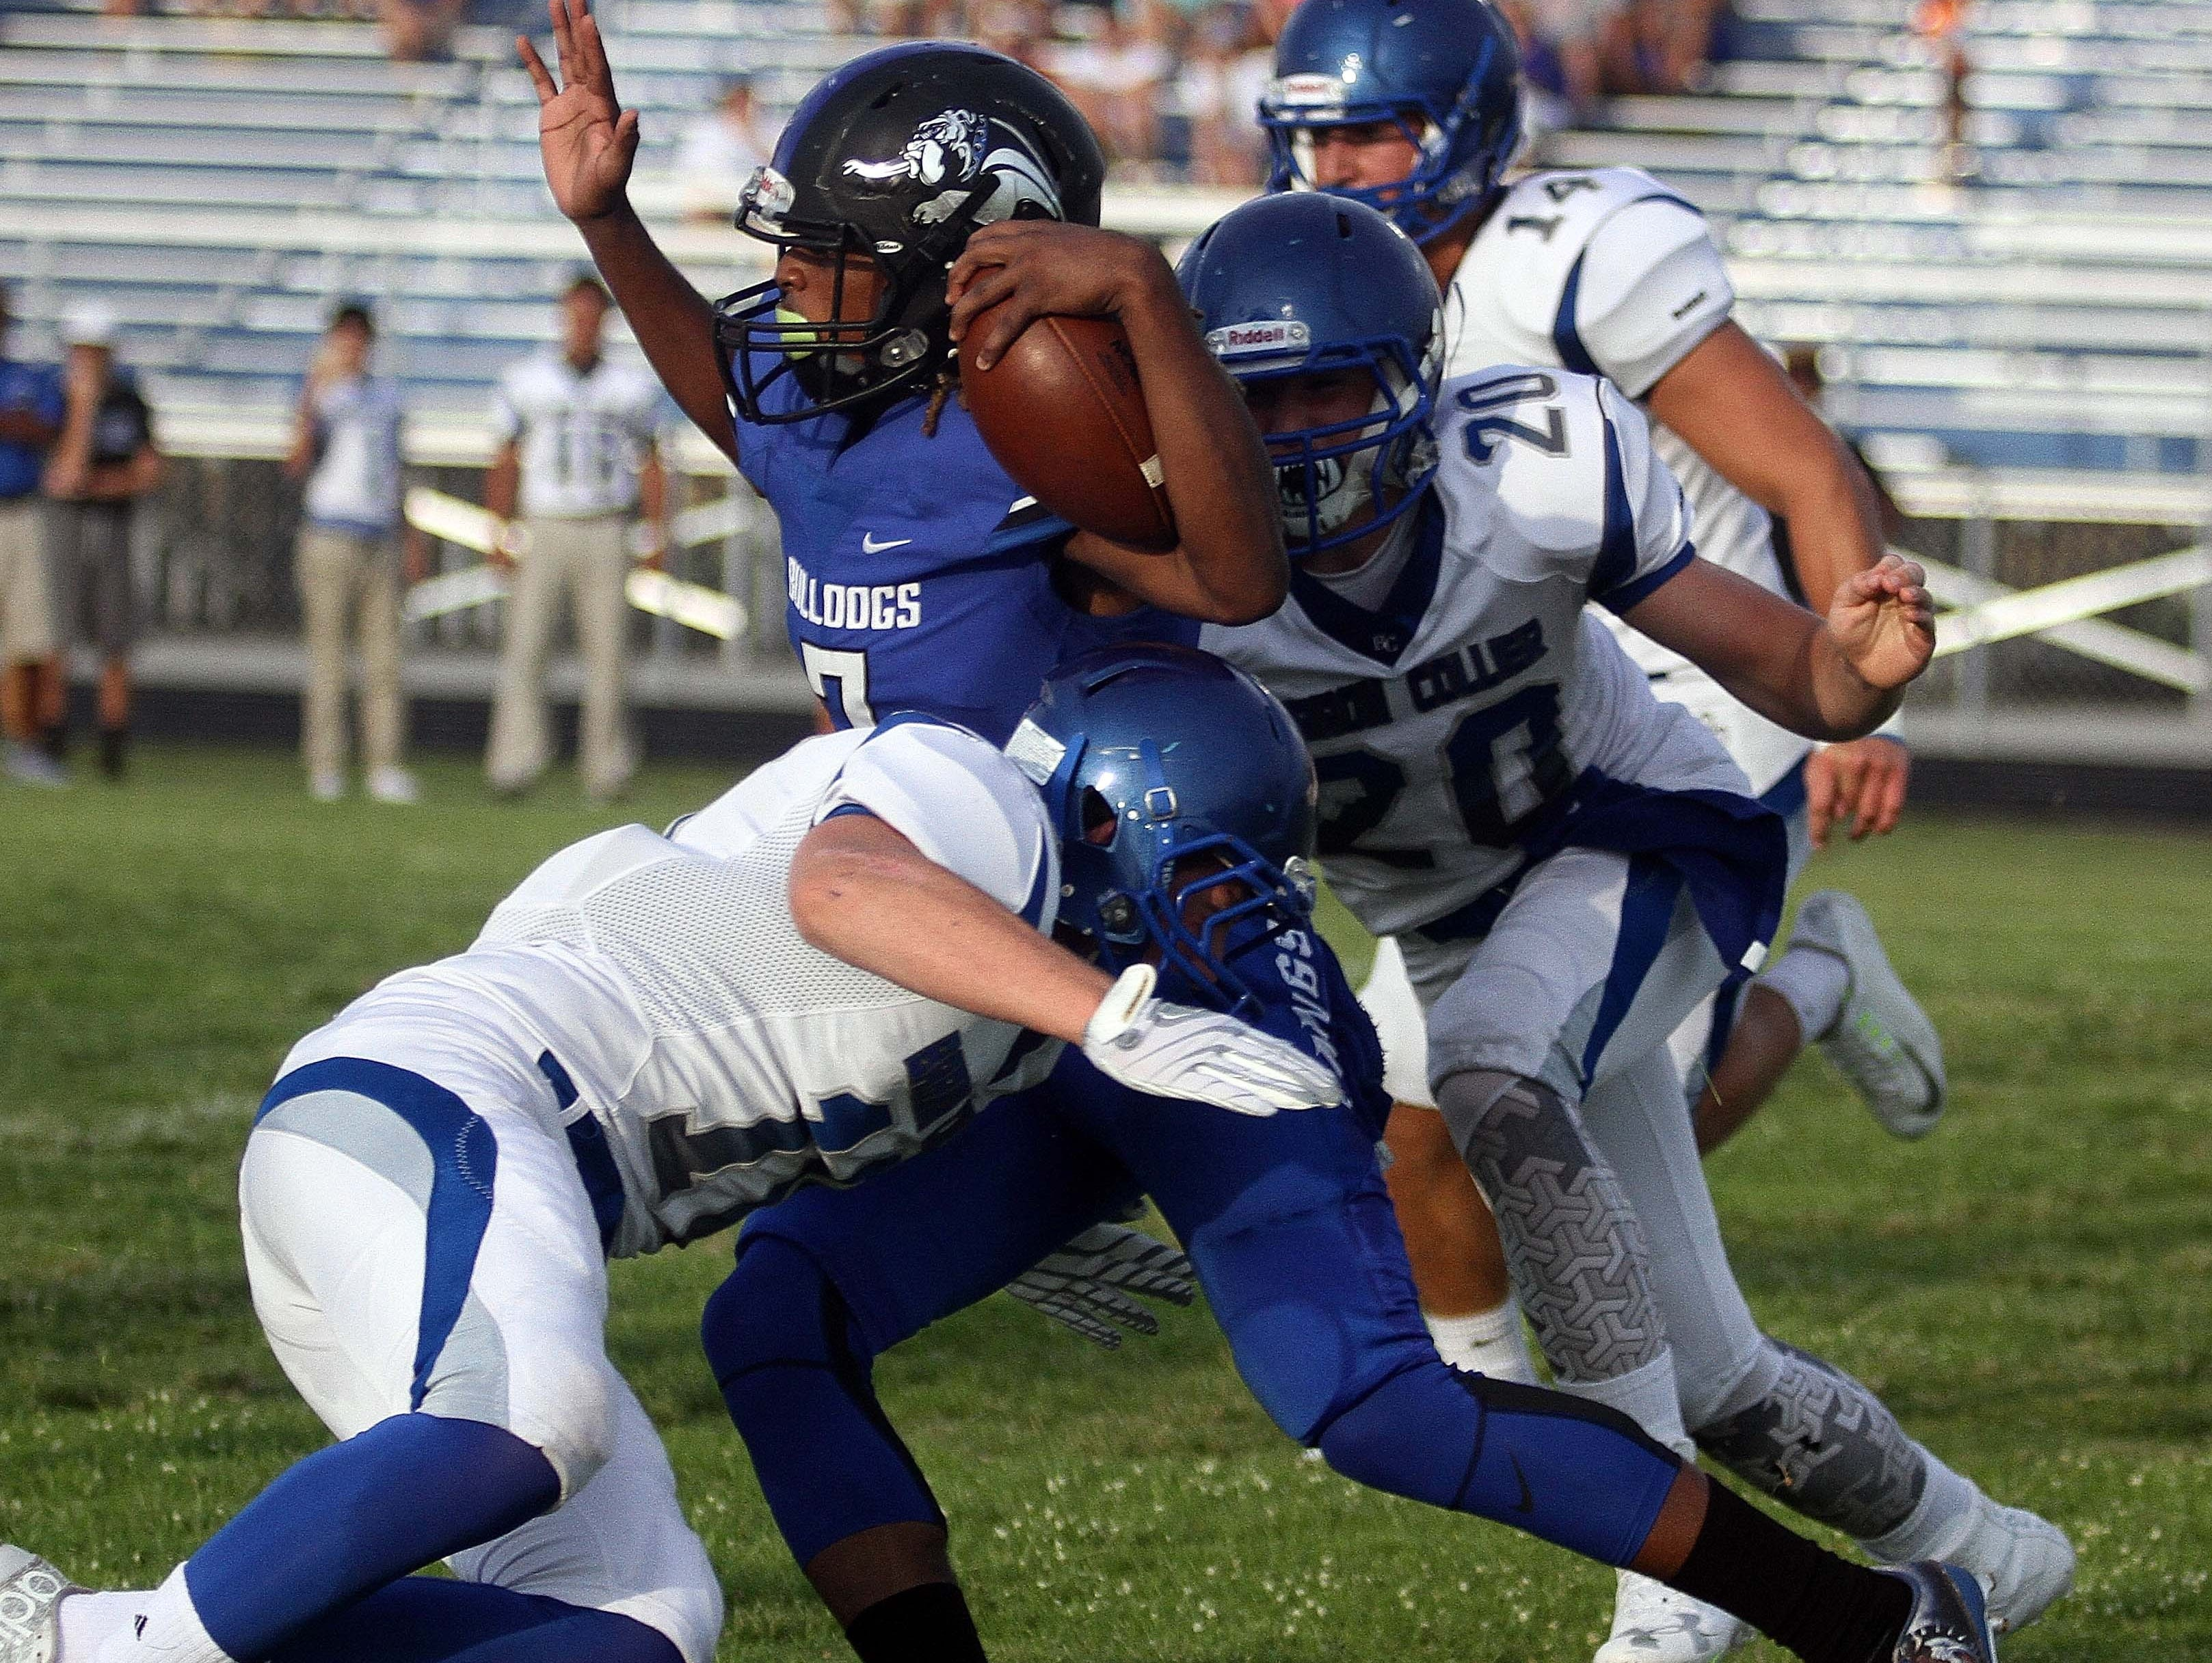 The Ida Baker football team averaged 26 points per game in 2015 but gave up 33. A reversal of those numbers would push the Bulldogs back to their winning ways after their first losing season since 2010.